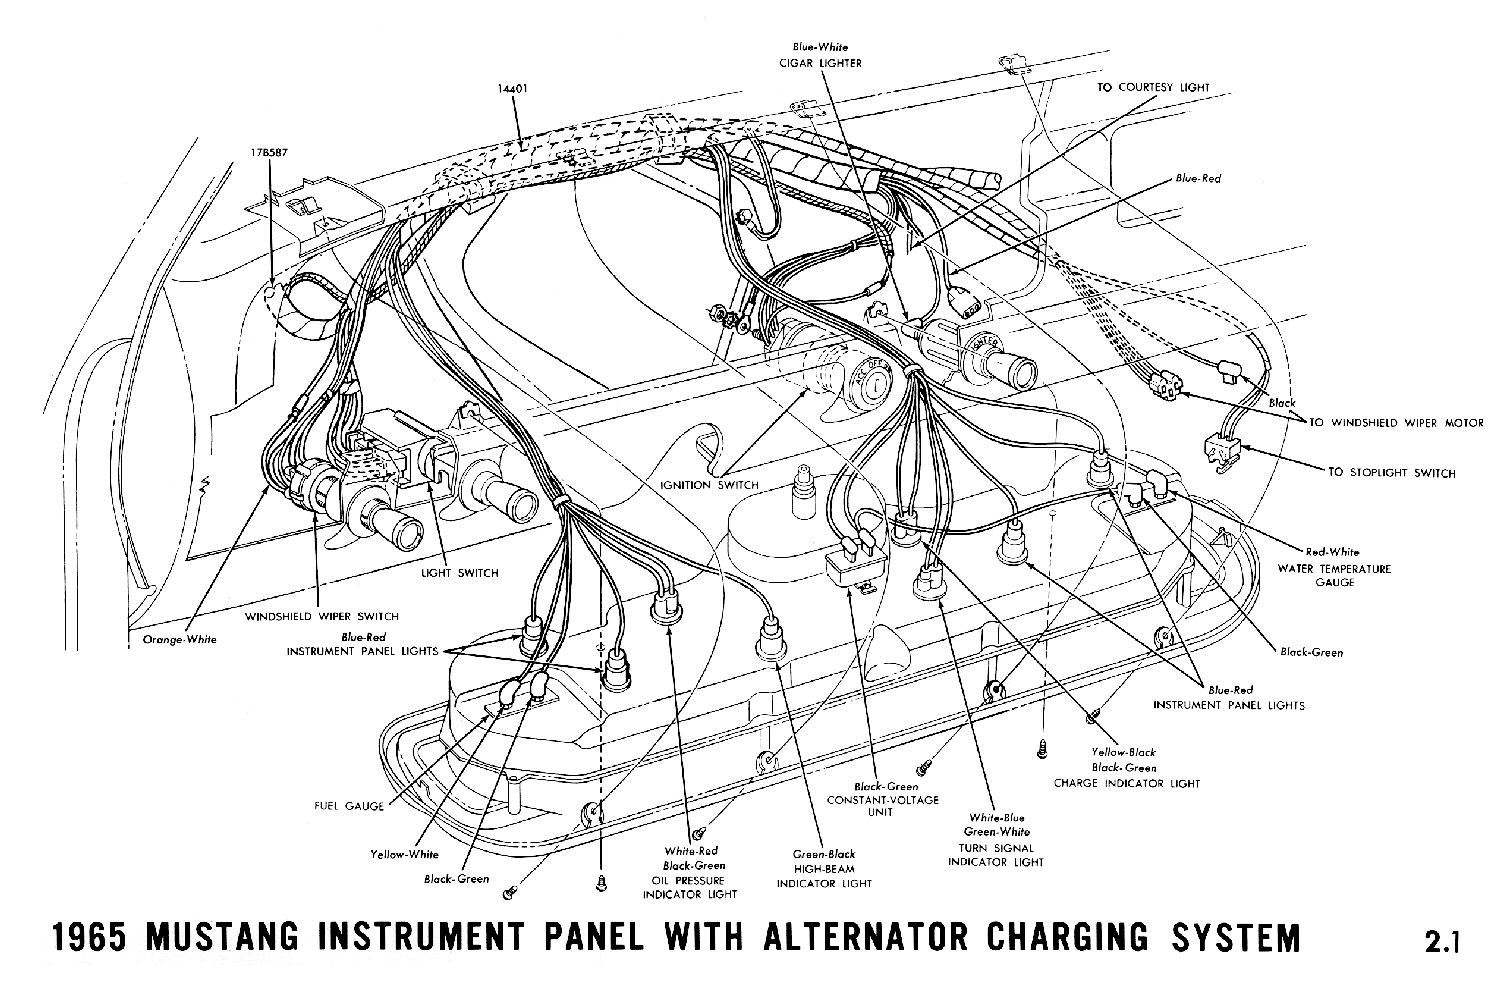 1965 Mustang Wiring Diagrams Average Joe Restoration Some T Diagram 1965a